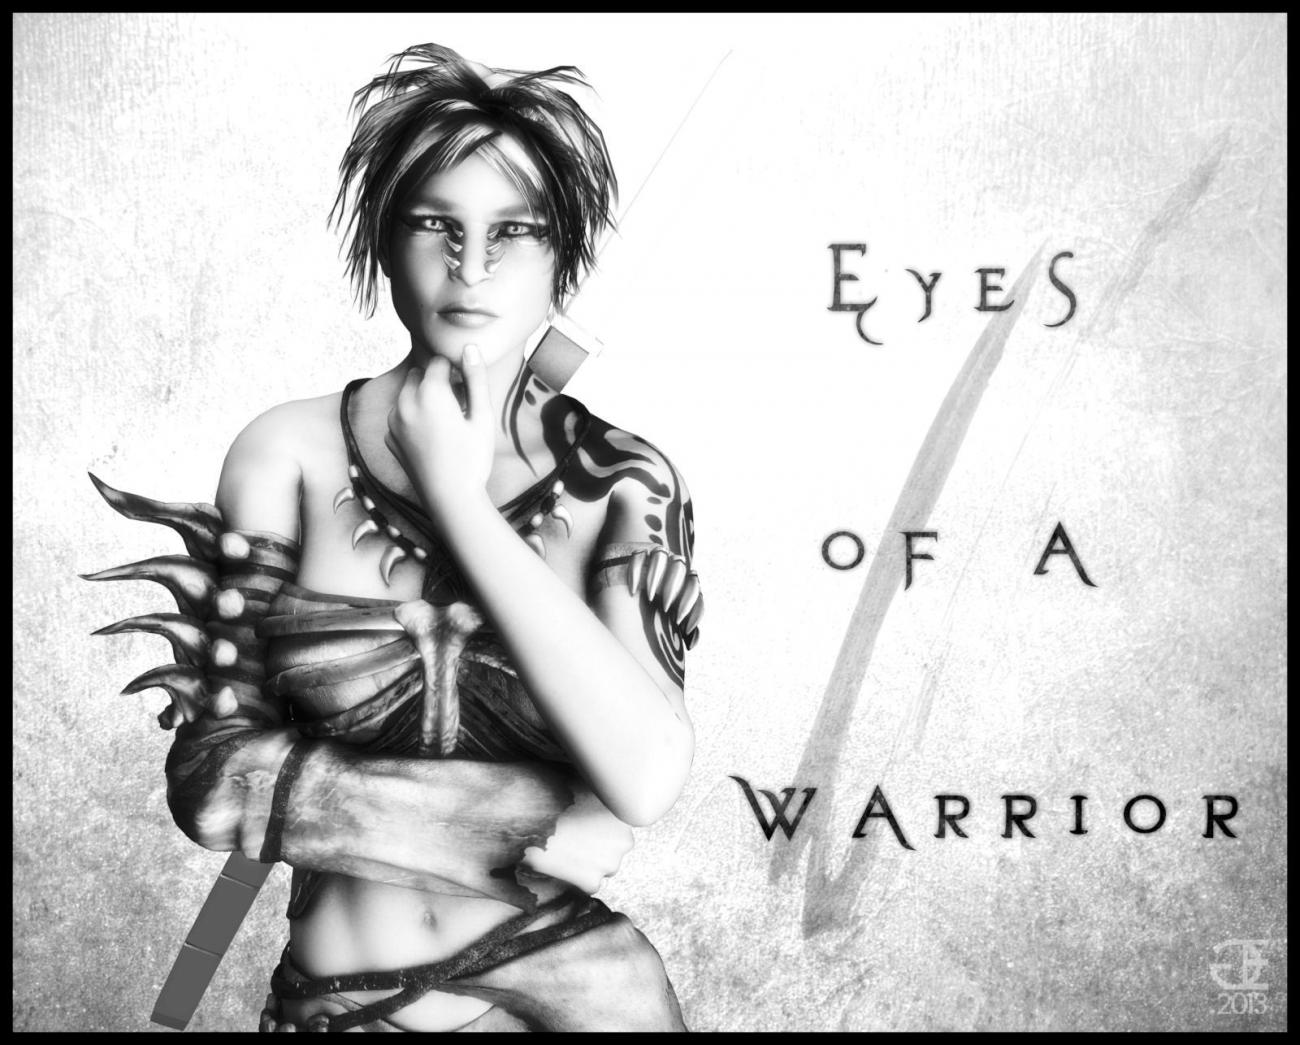 Eyes of a Warrior